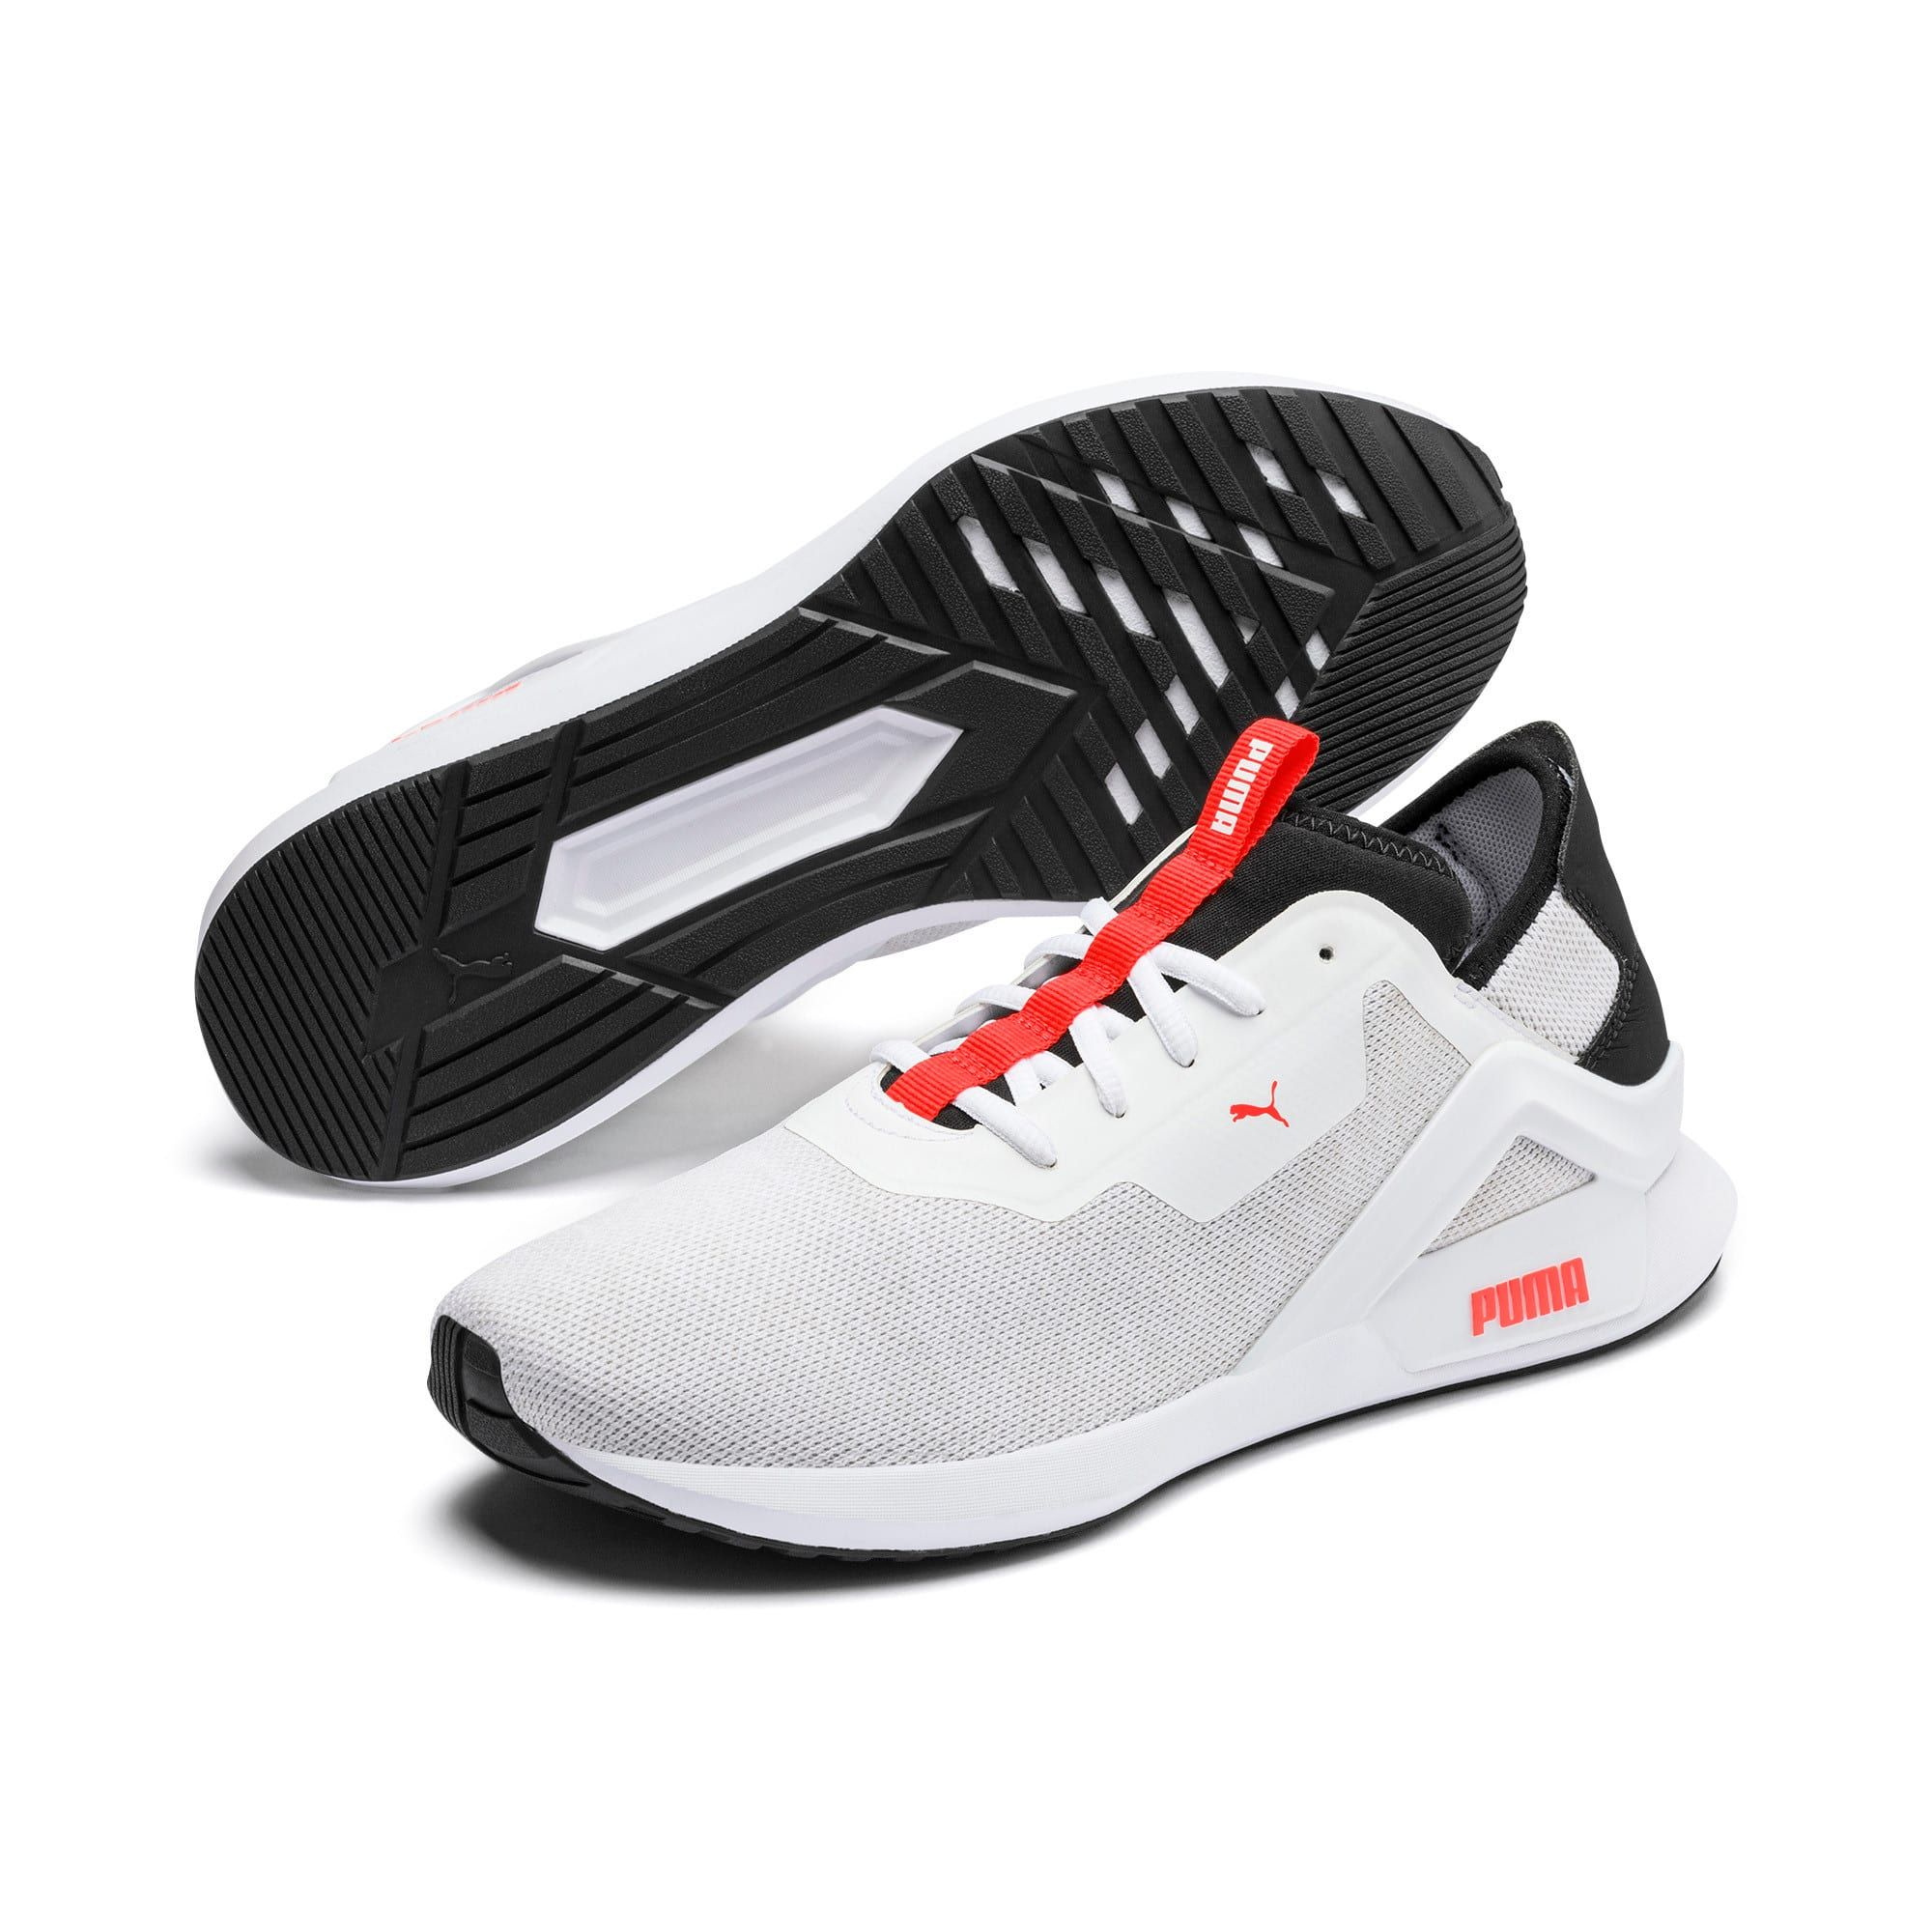 PUMA Rogue x Knit Men's Trainers in WhiteBlackRed size 7